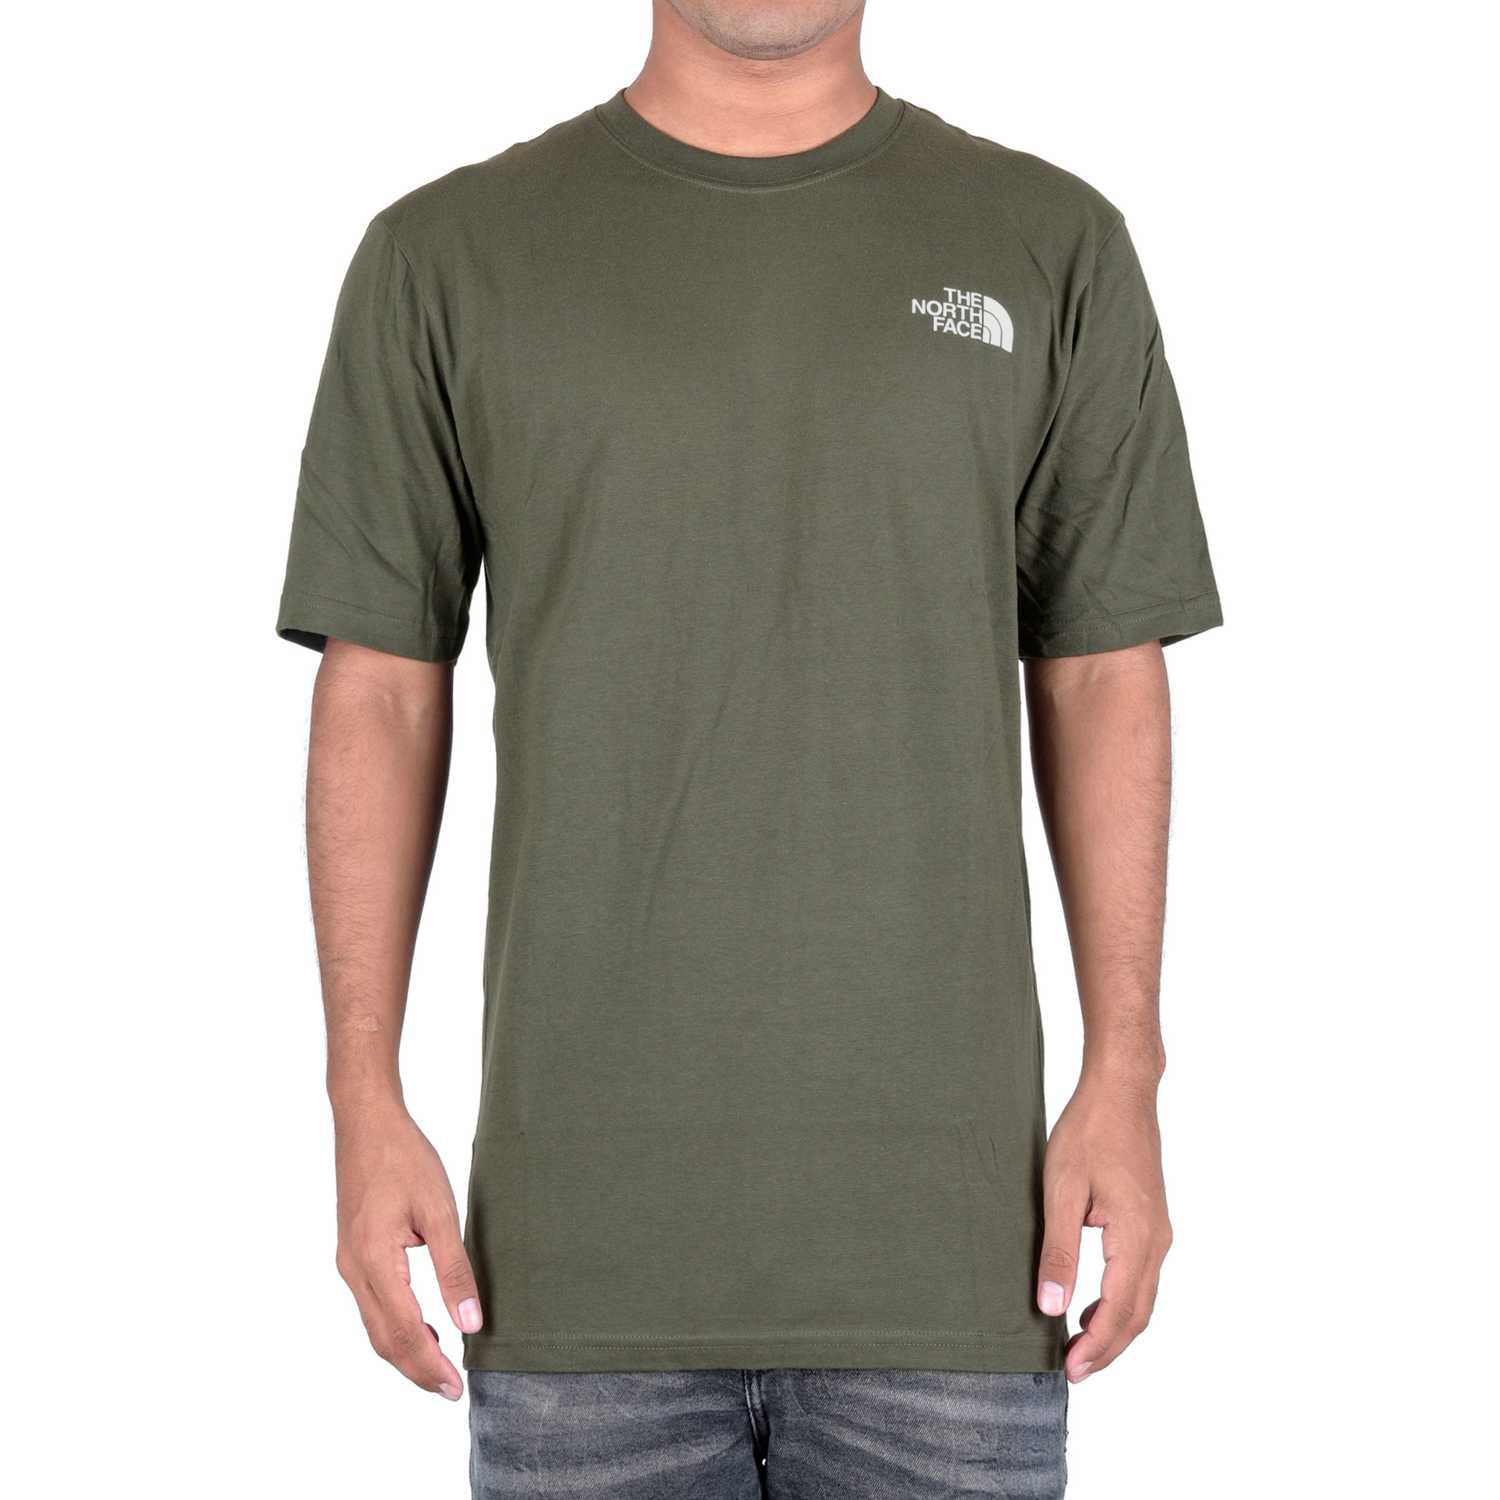 Deportivo de Hombre The North Face Verde m s/s red box tee